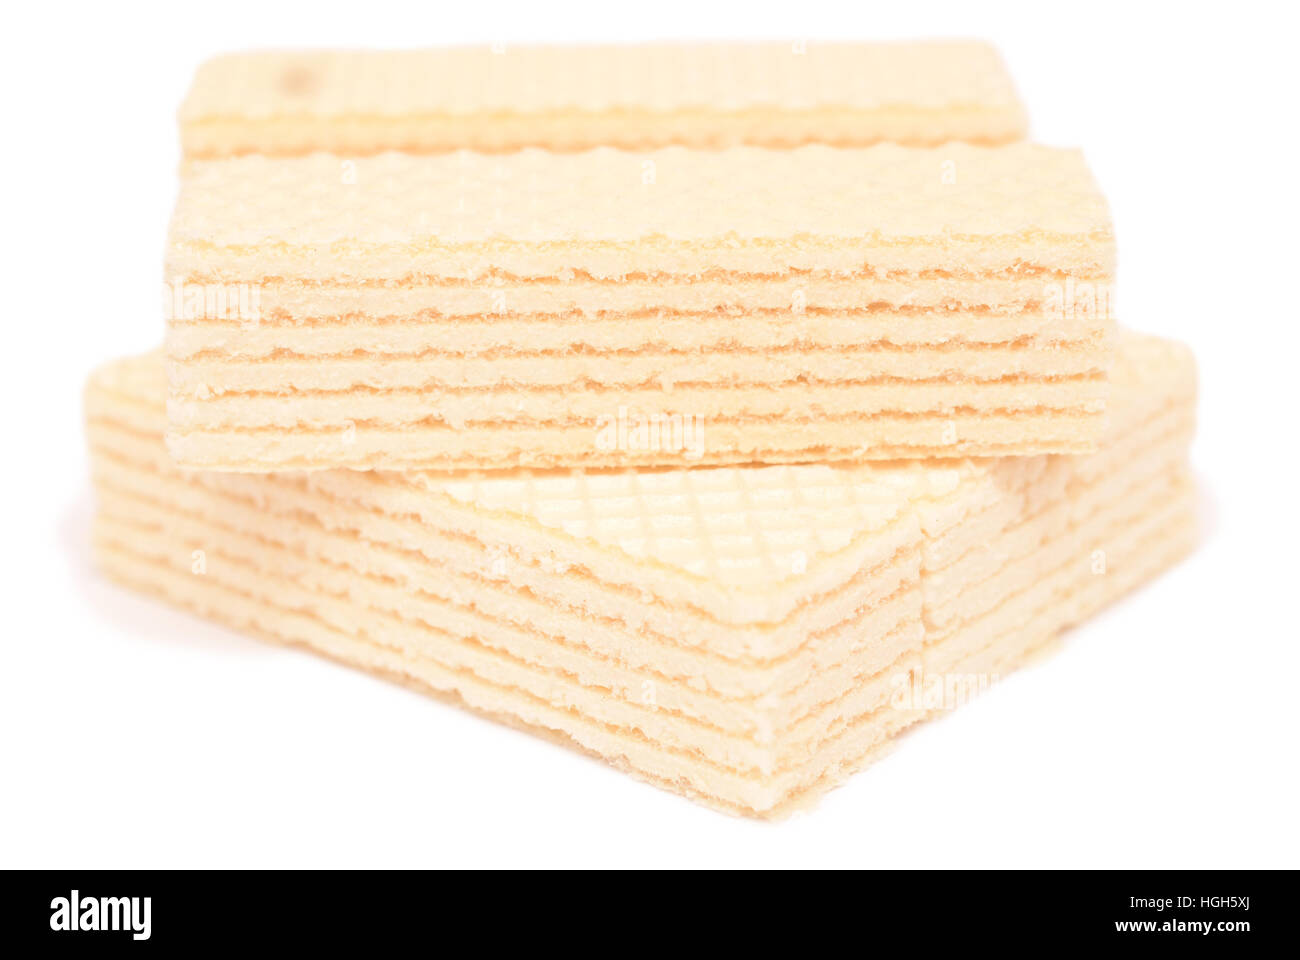 Wafer biscuit isolated on white background - Stock Image